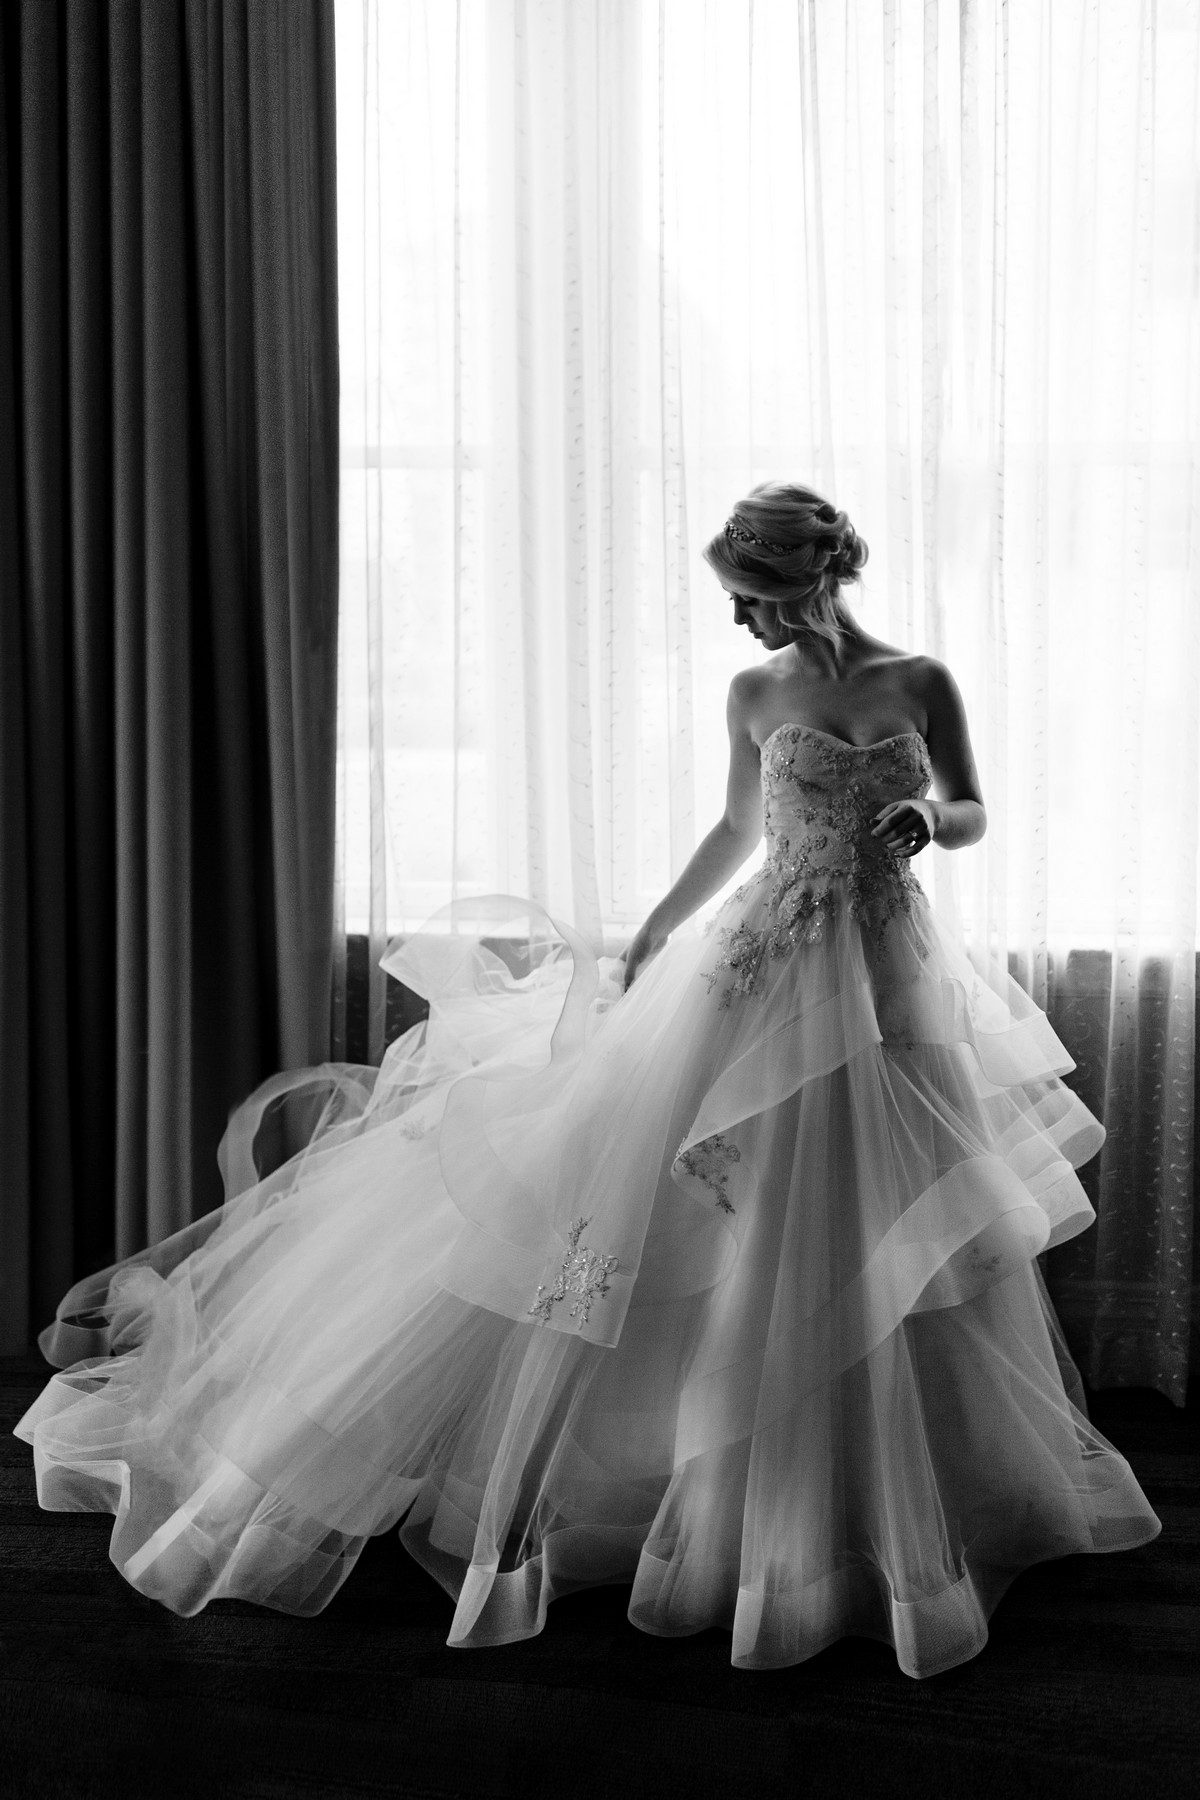 Bride in stunning strapless ruffled ballgown photo by John and Joseph - Los Angeles